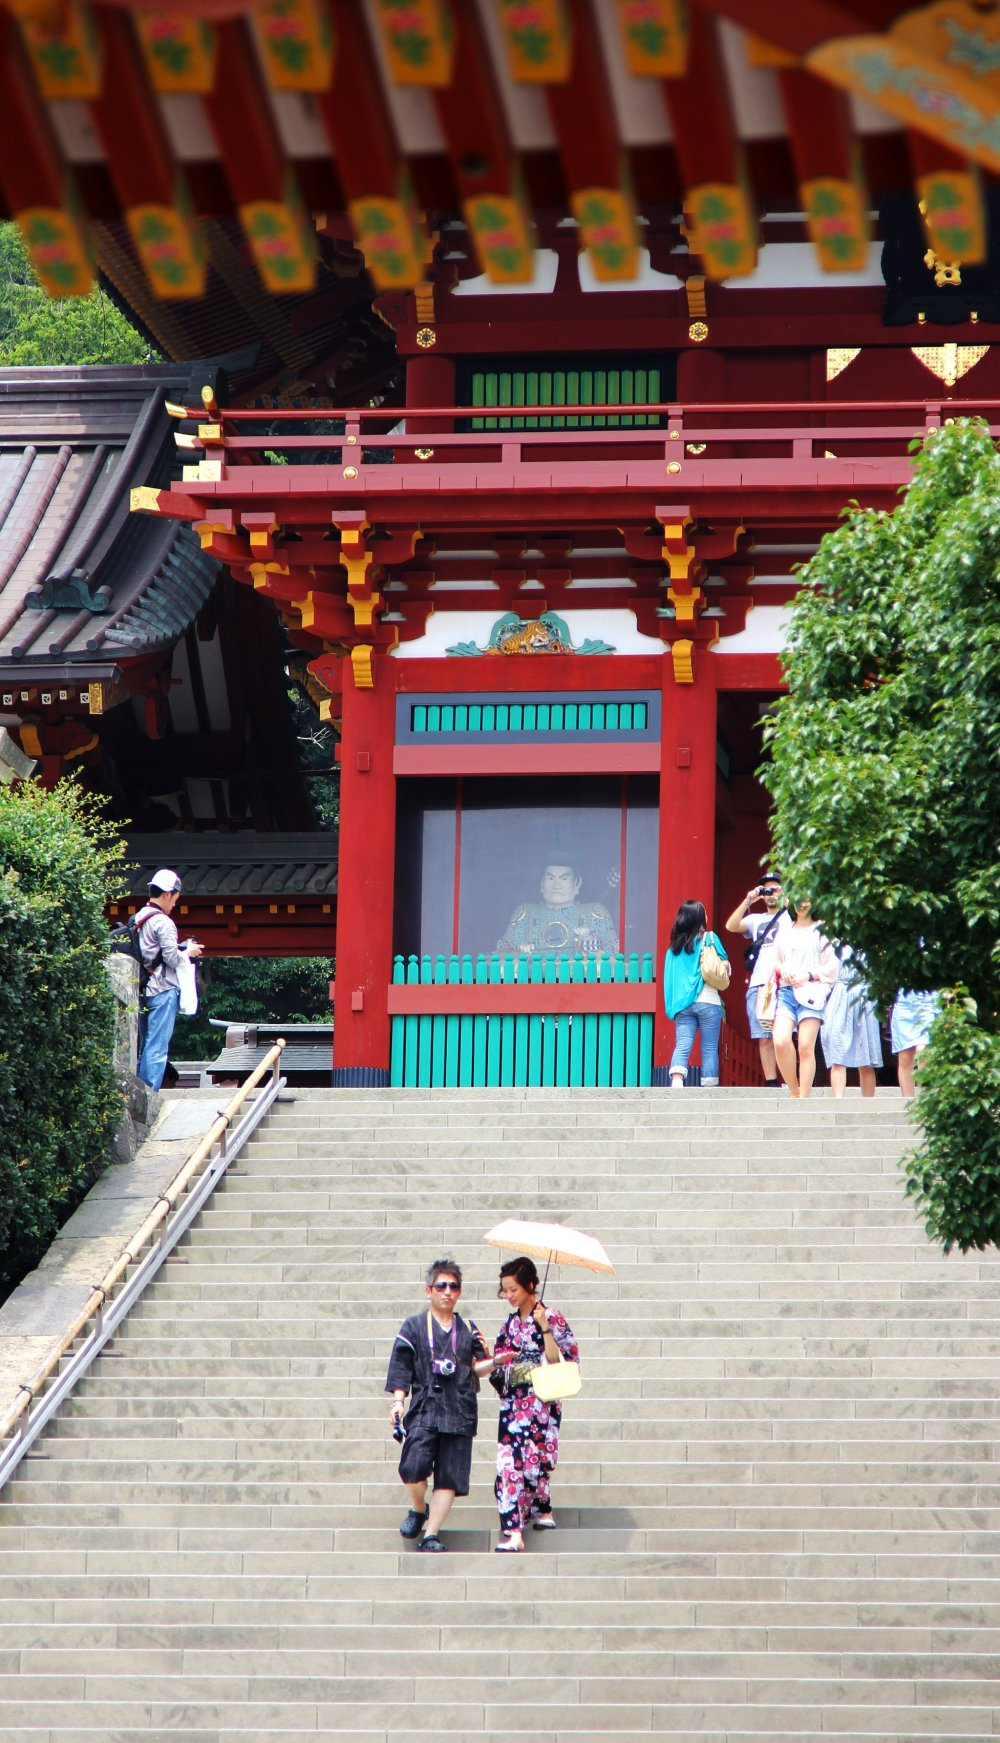 Some people decided to dress traditionally to visit the shrine, with sunglasses on top though.